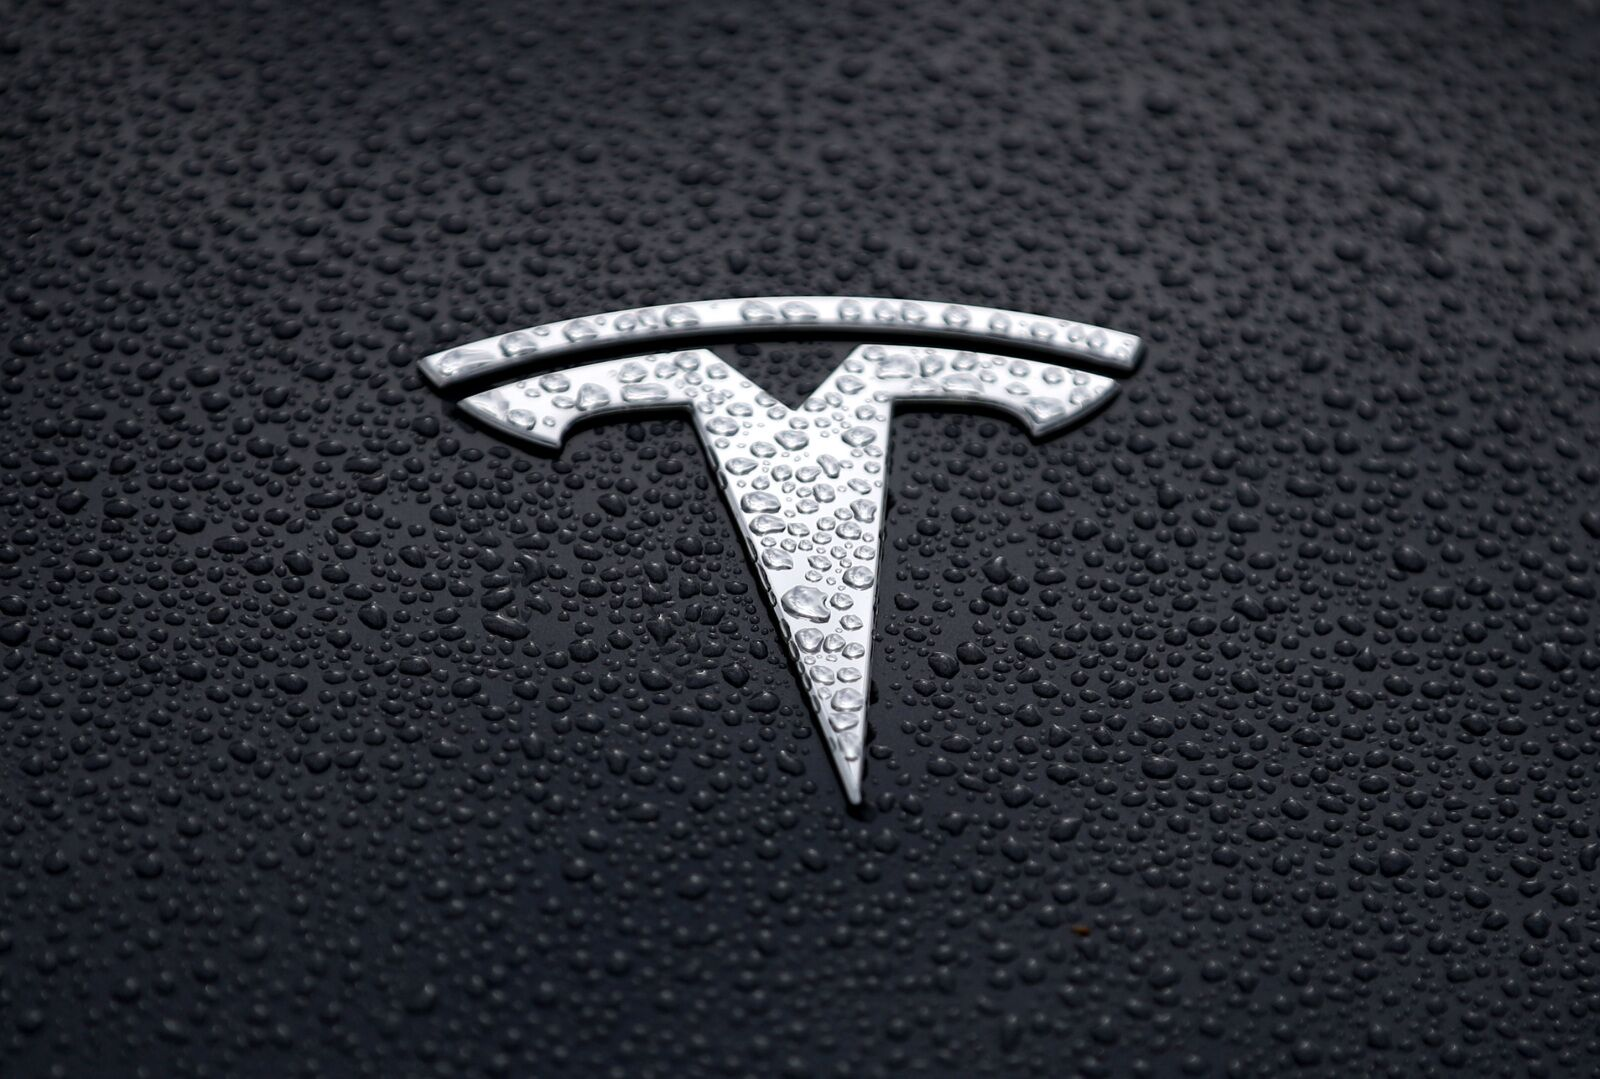 Cybertruck: The Official Name of Tesla's EV Truck?